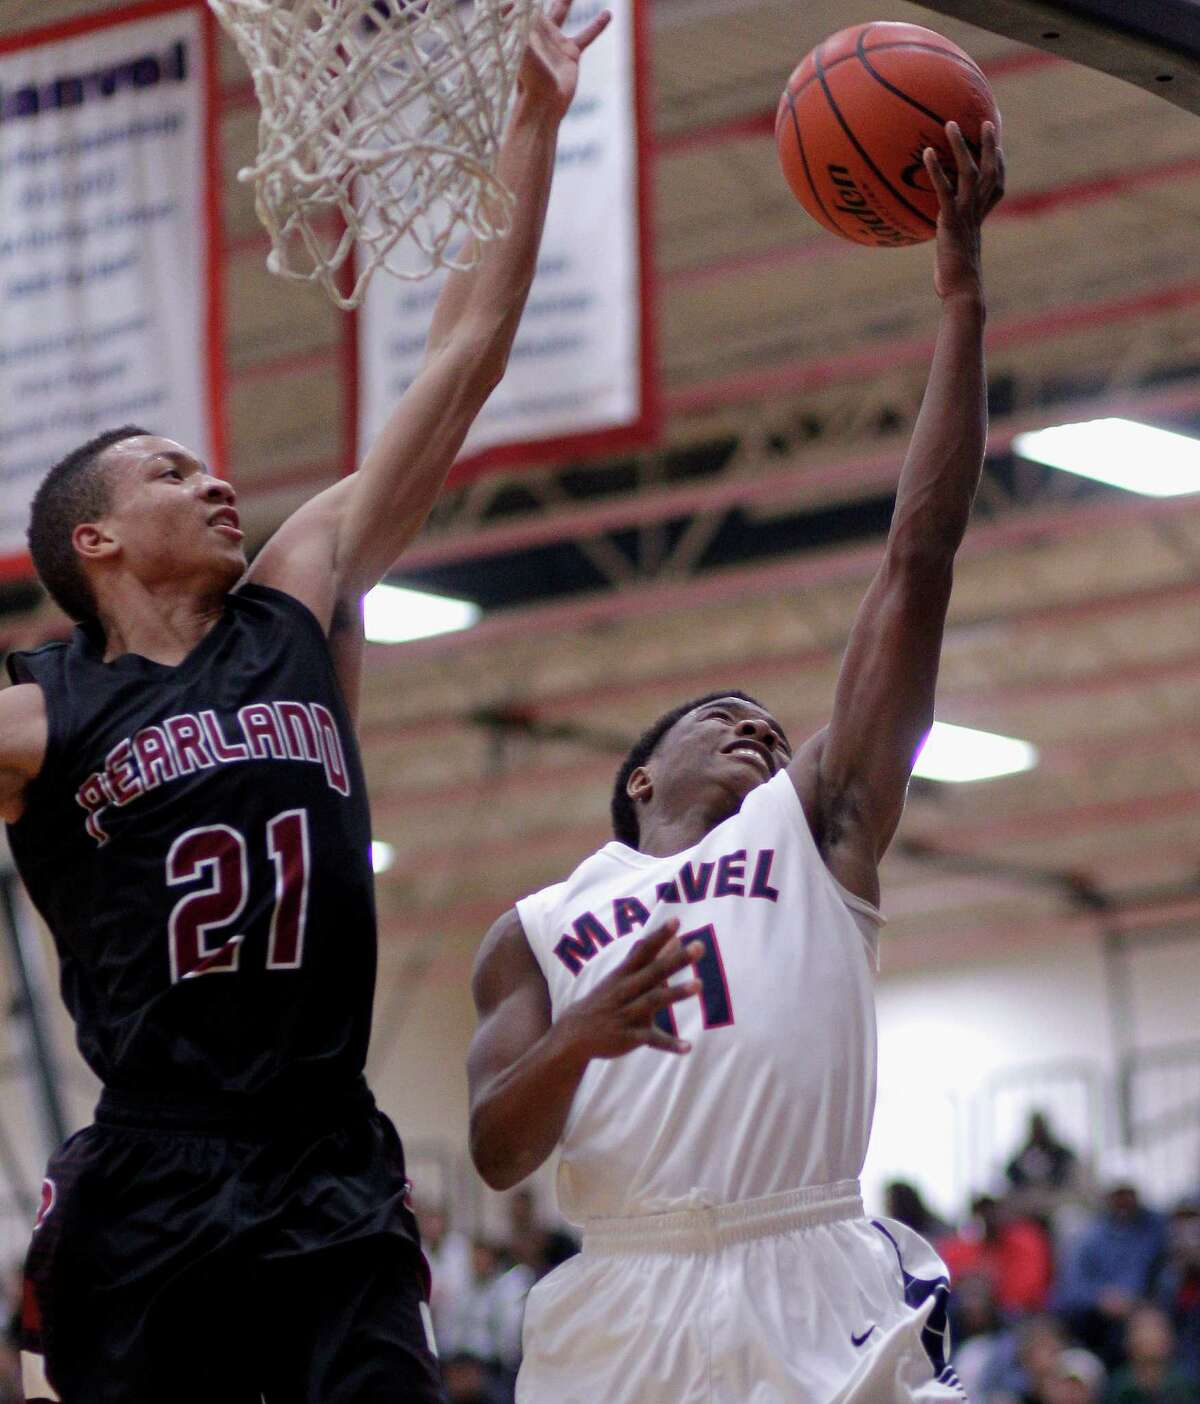 Manvel's D'Eriq King has his layup attempt blocked by Pearland' s Jeremy Sneed during a high school basketball game Tuesday, January 114, 2014. (Bob Levey/Special To The Chronicle)